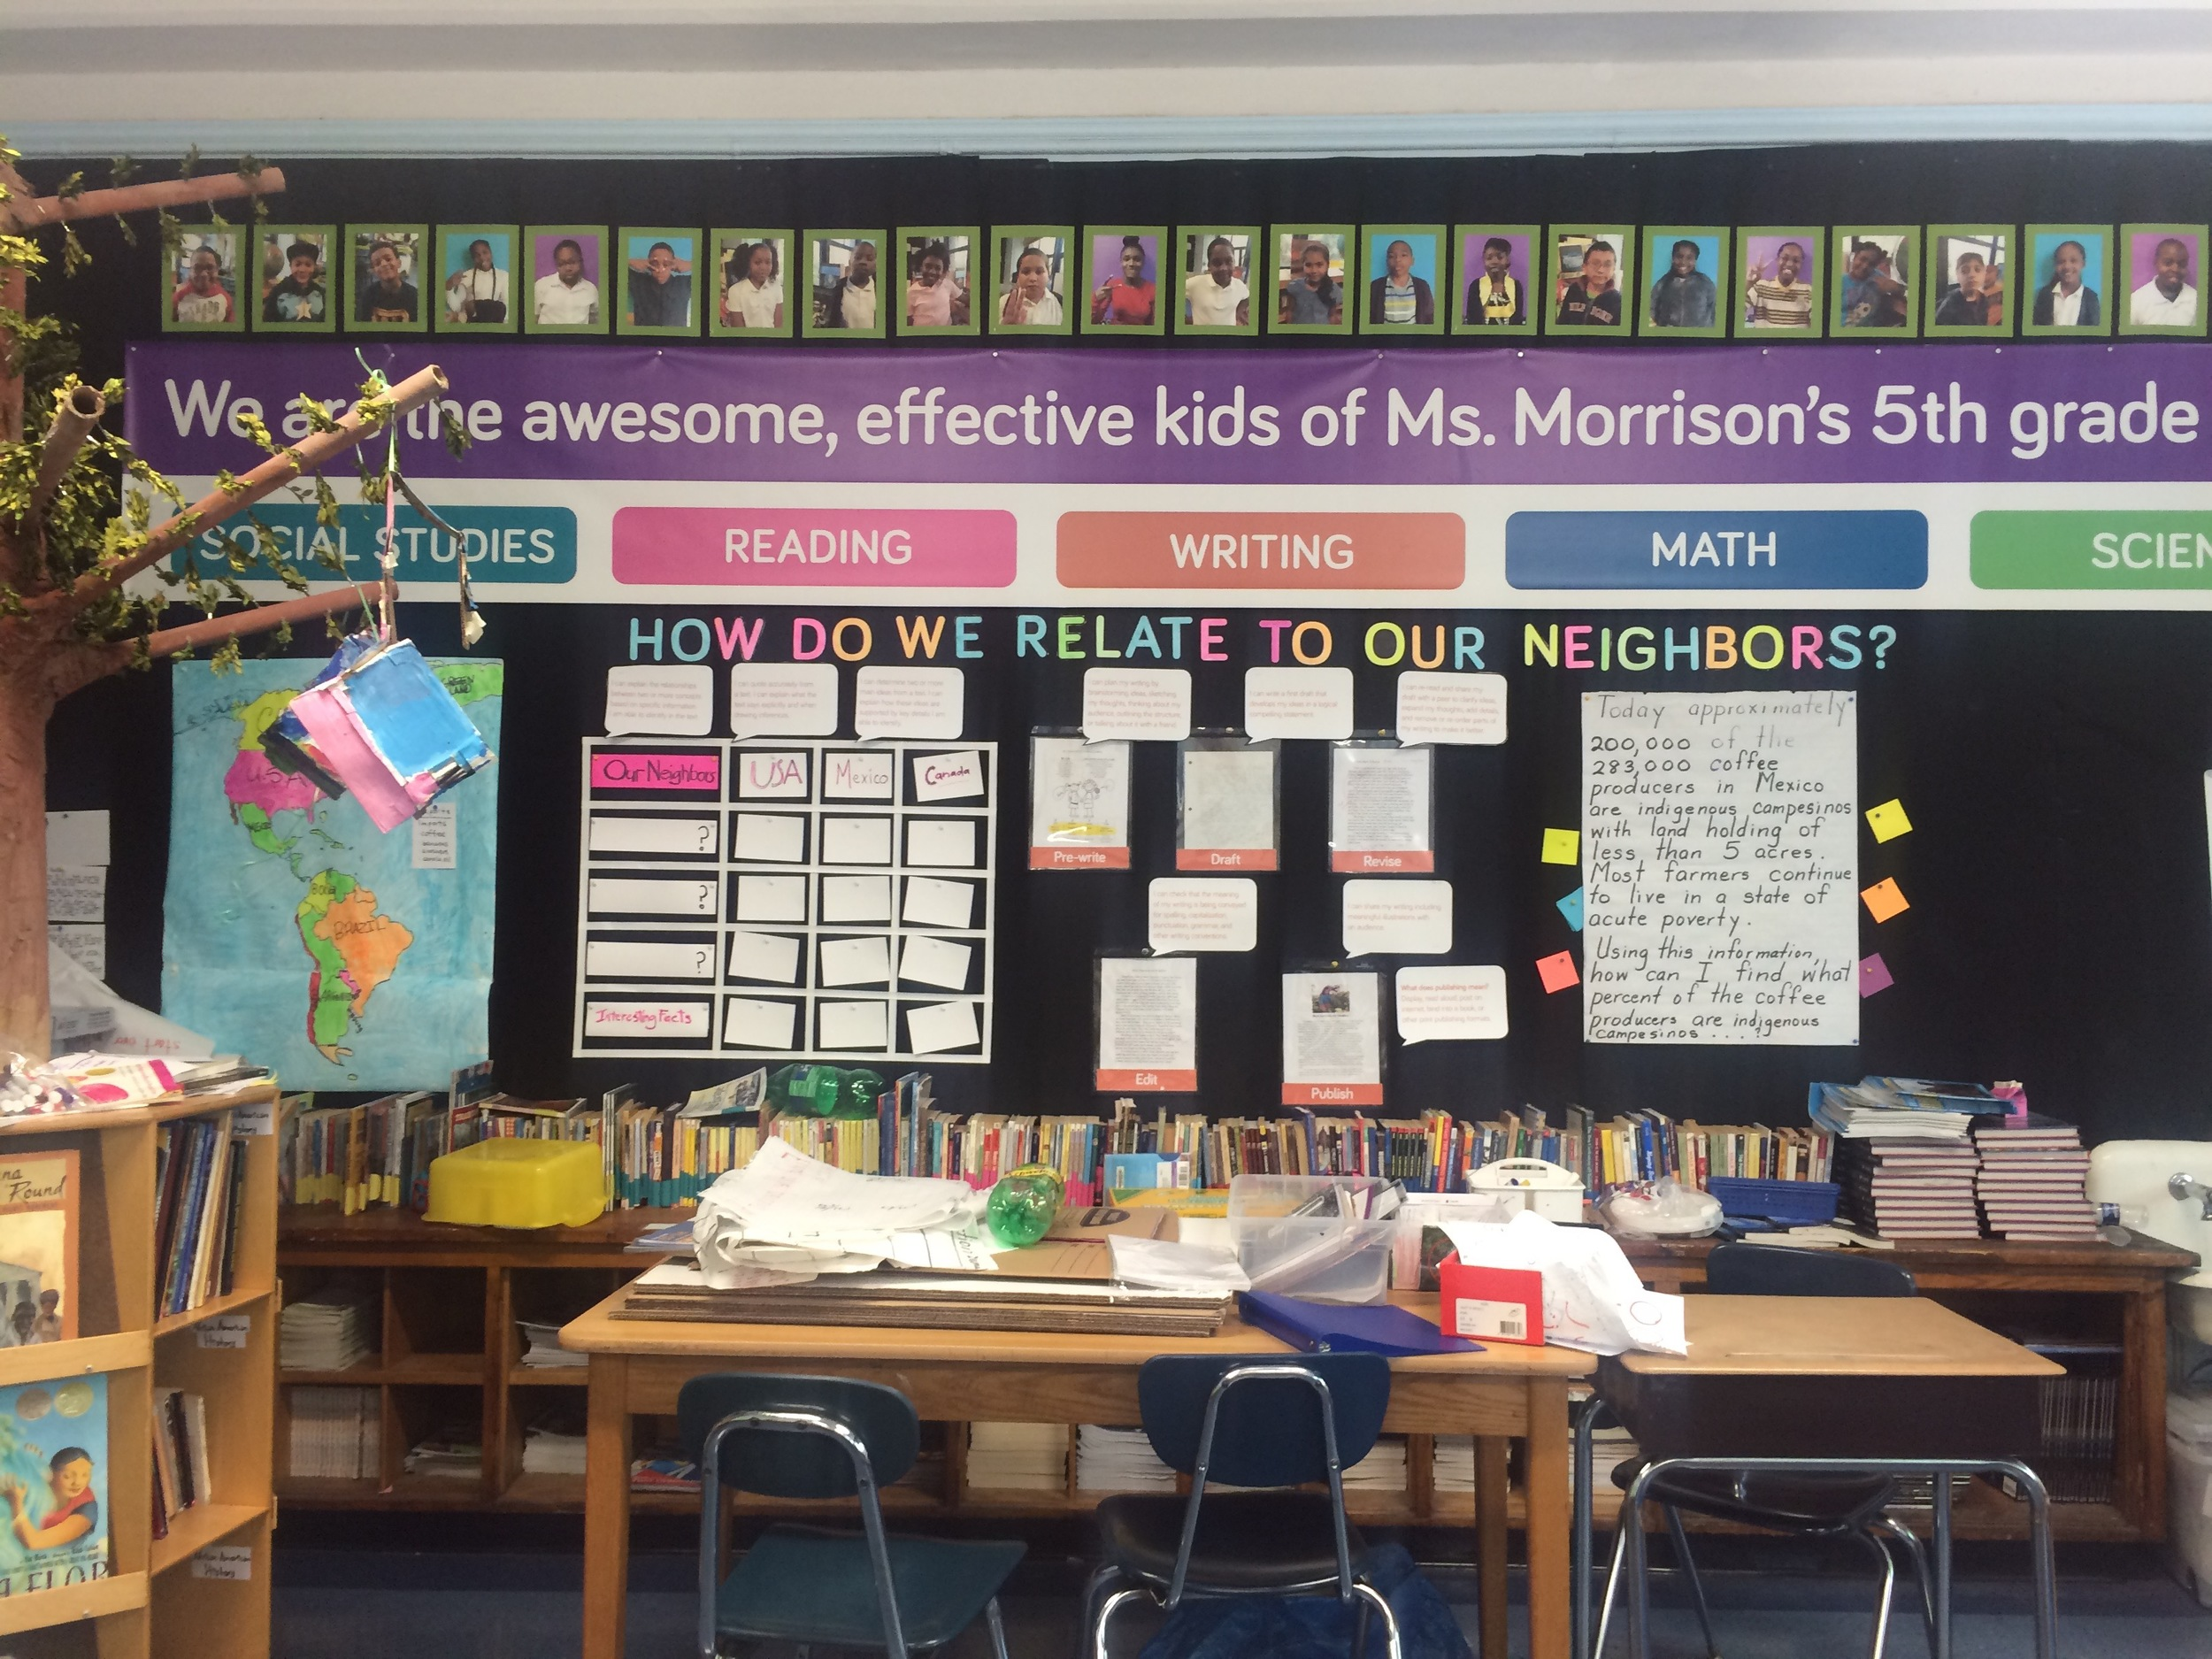 the Learning Wall is up and being added to.